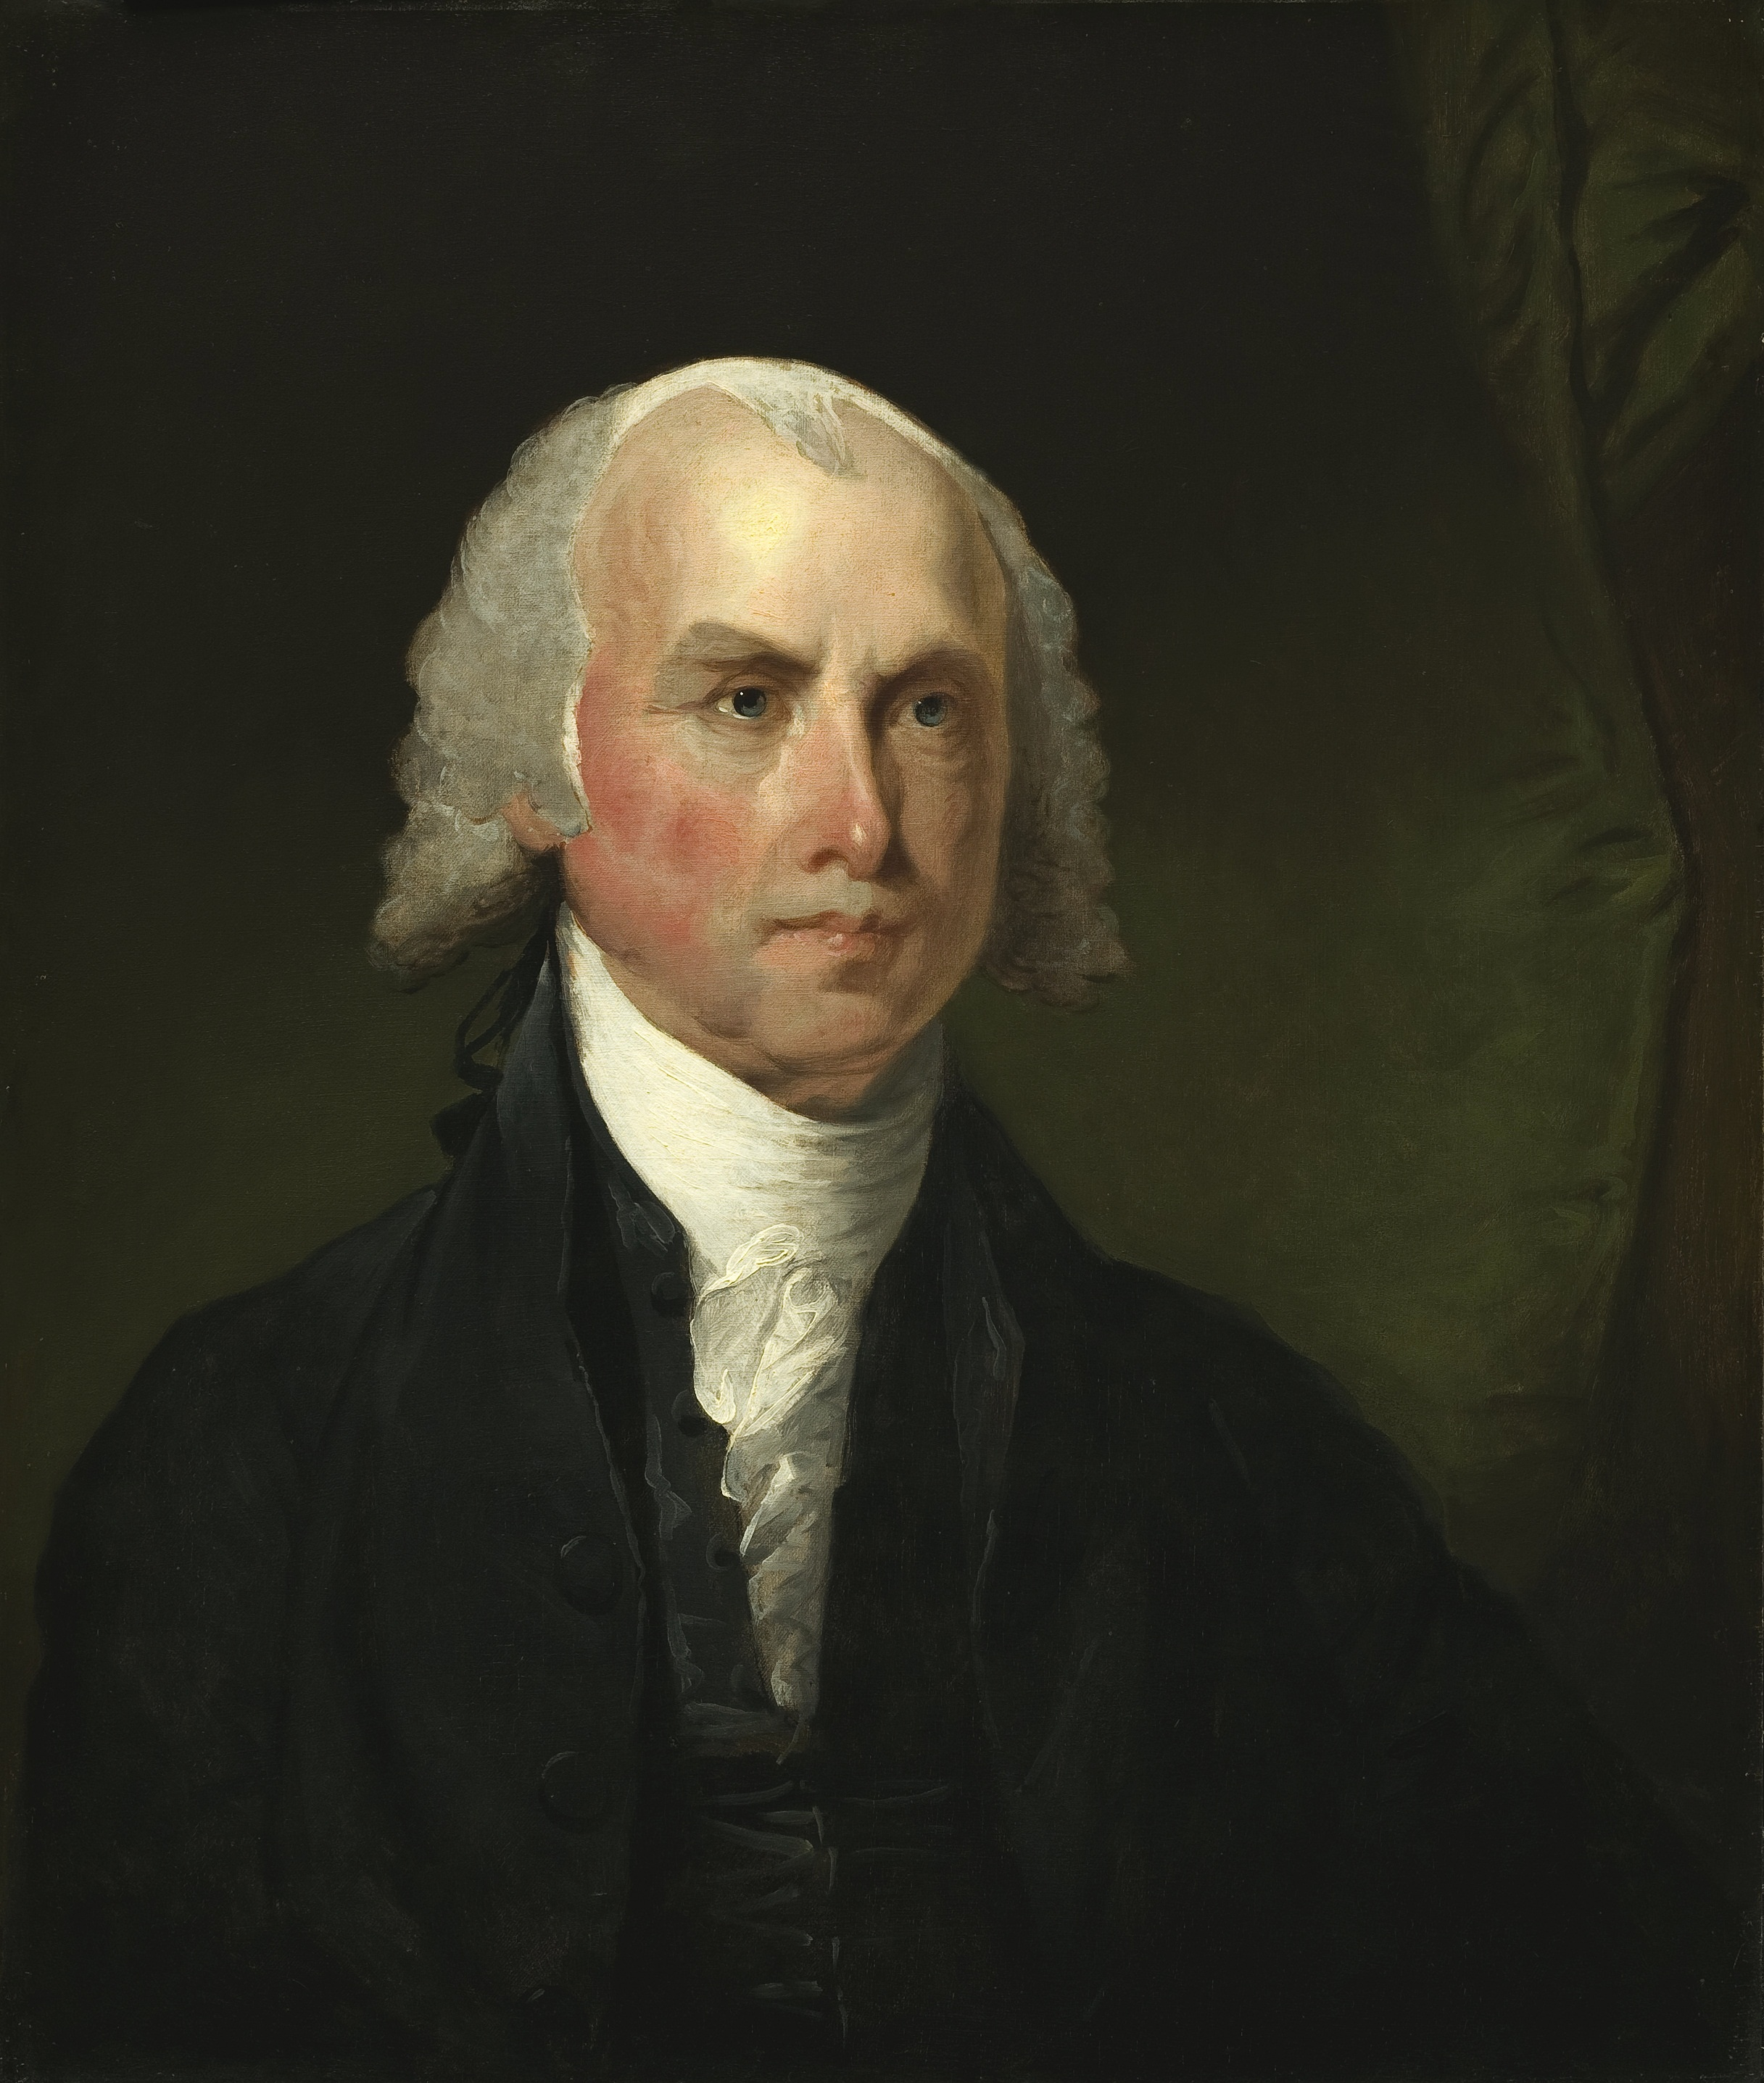 James Madison, portrait from Whitehouse.gov, and Wikimedia